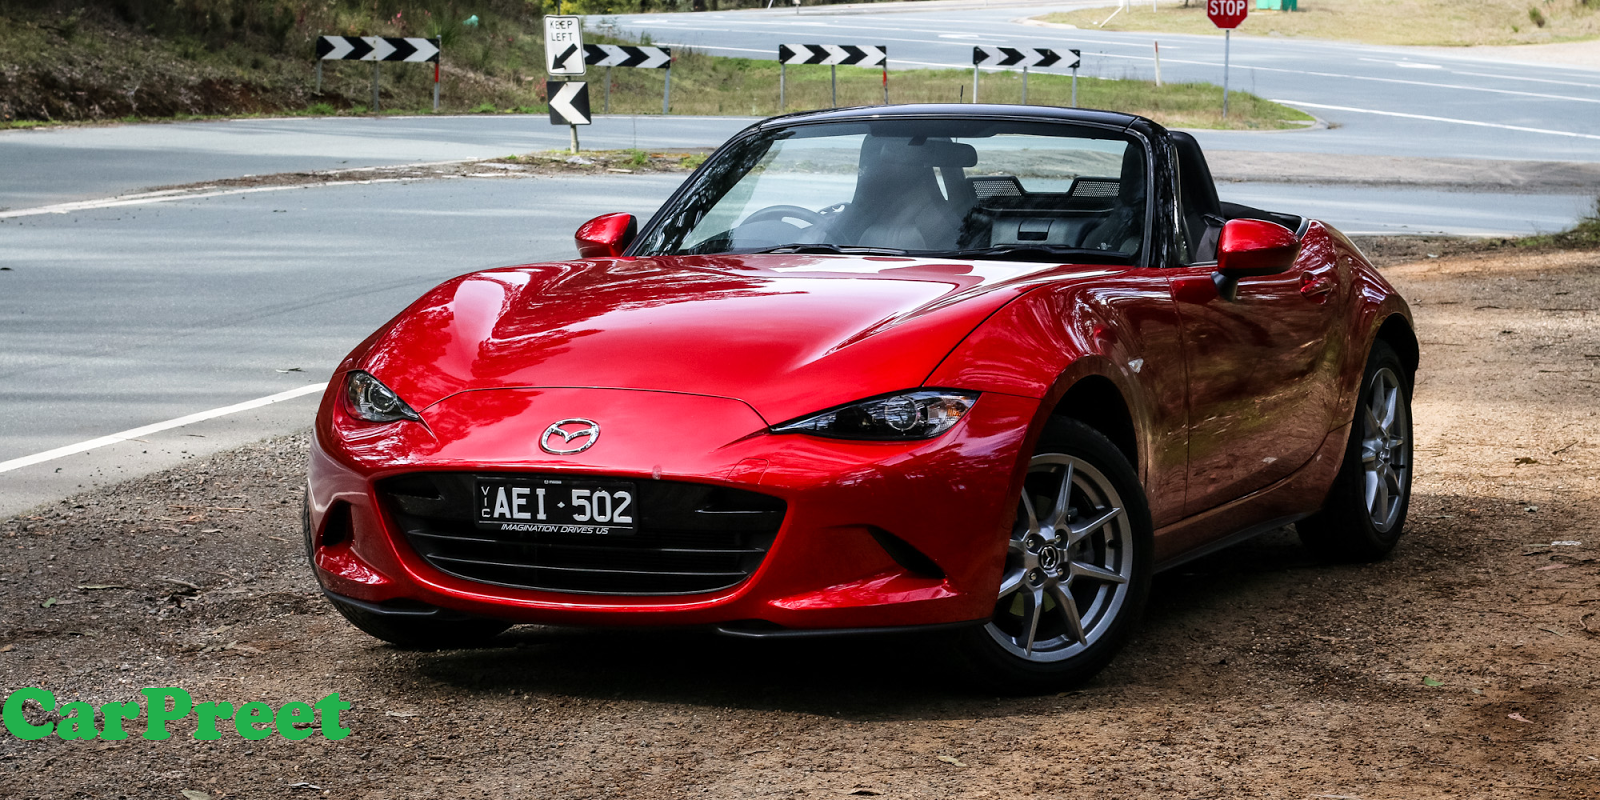 2015 mazda mx 5 roadster review latest cars and reviews. Black Bedroom Furniture Sets. Home Design Ideas